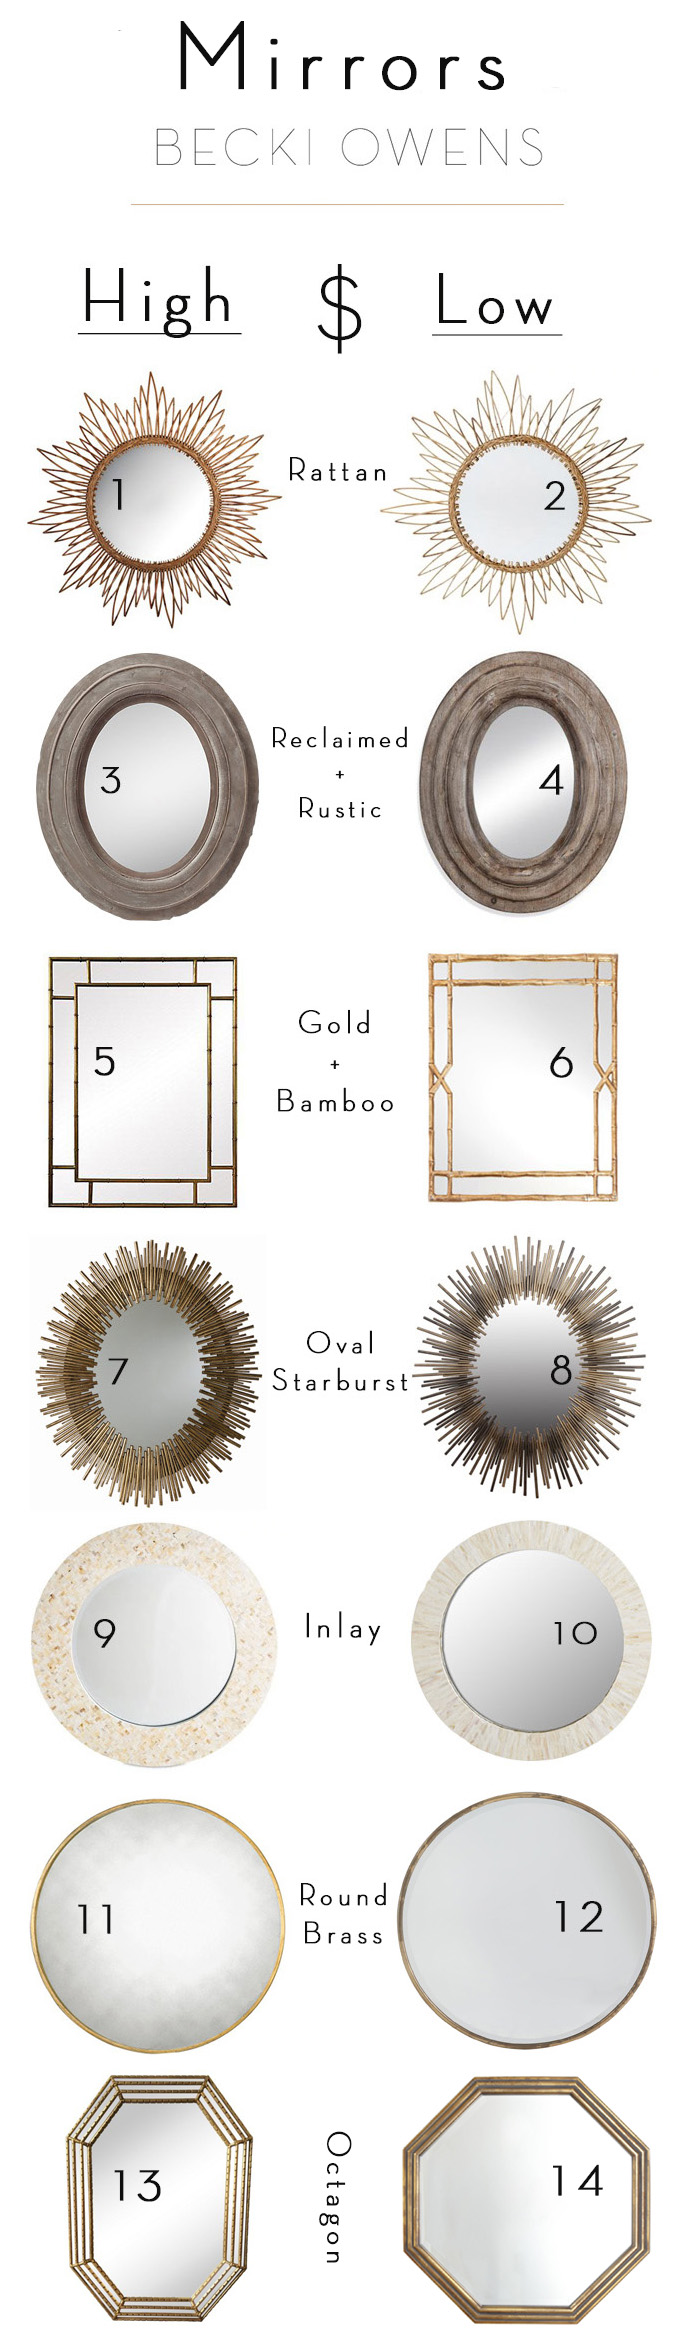 splurge and save mirrors becki owens